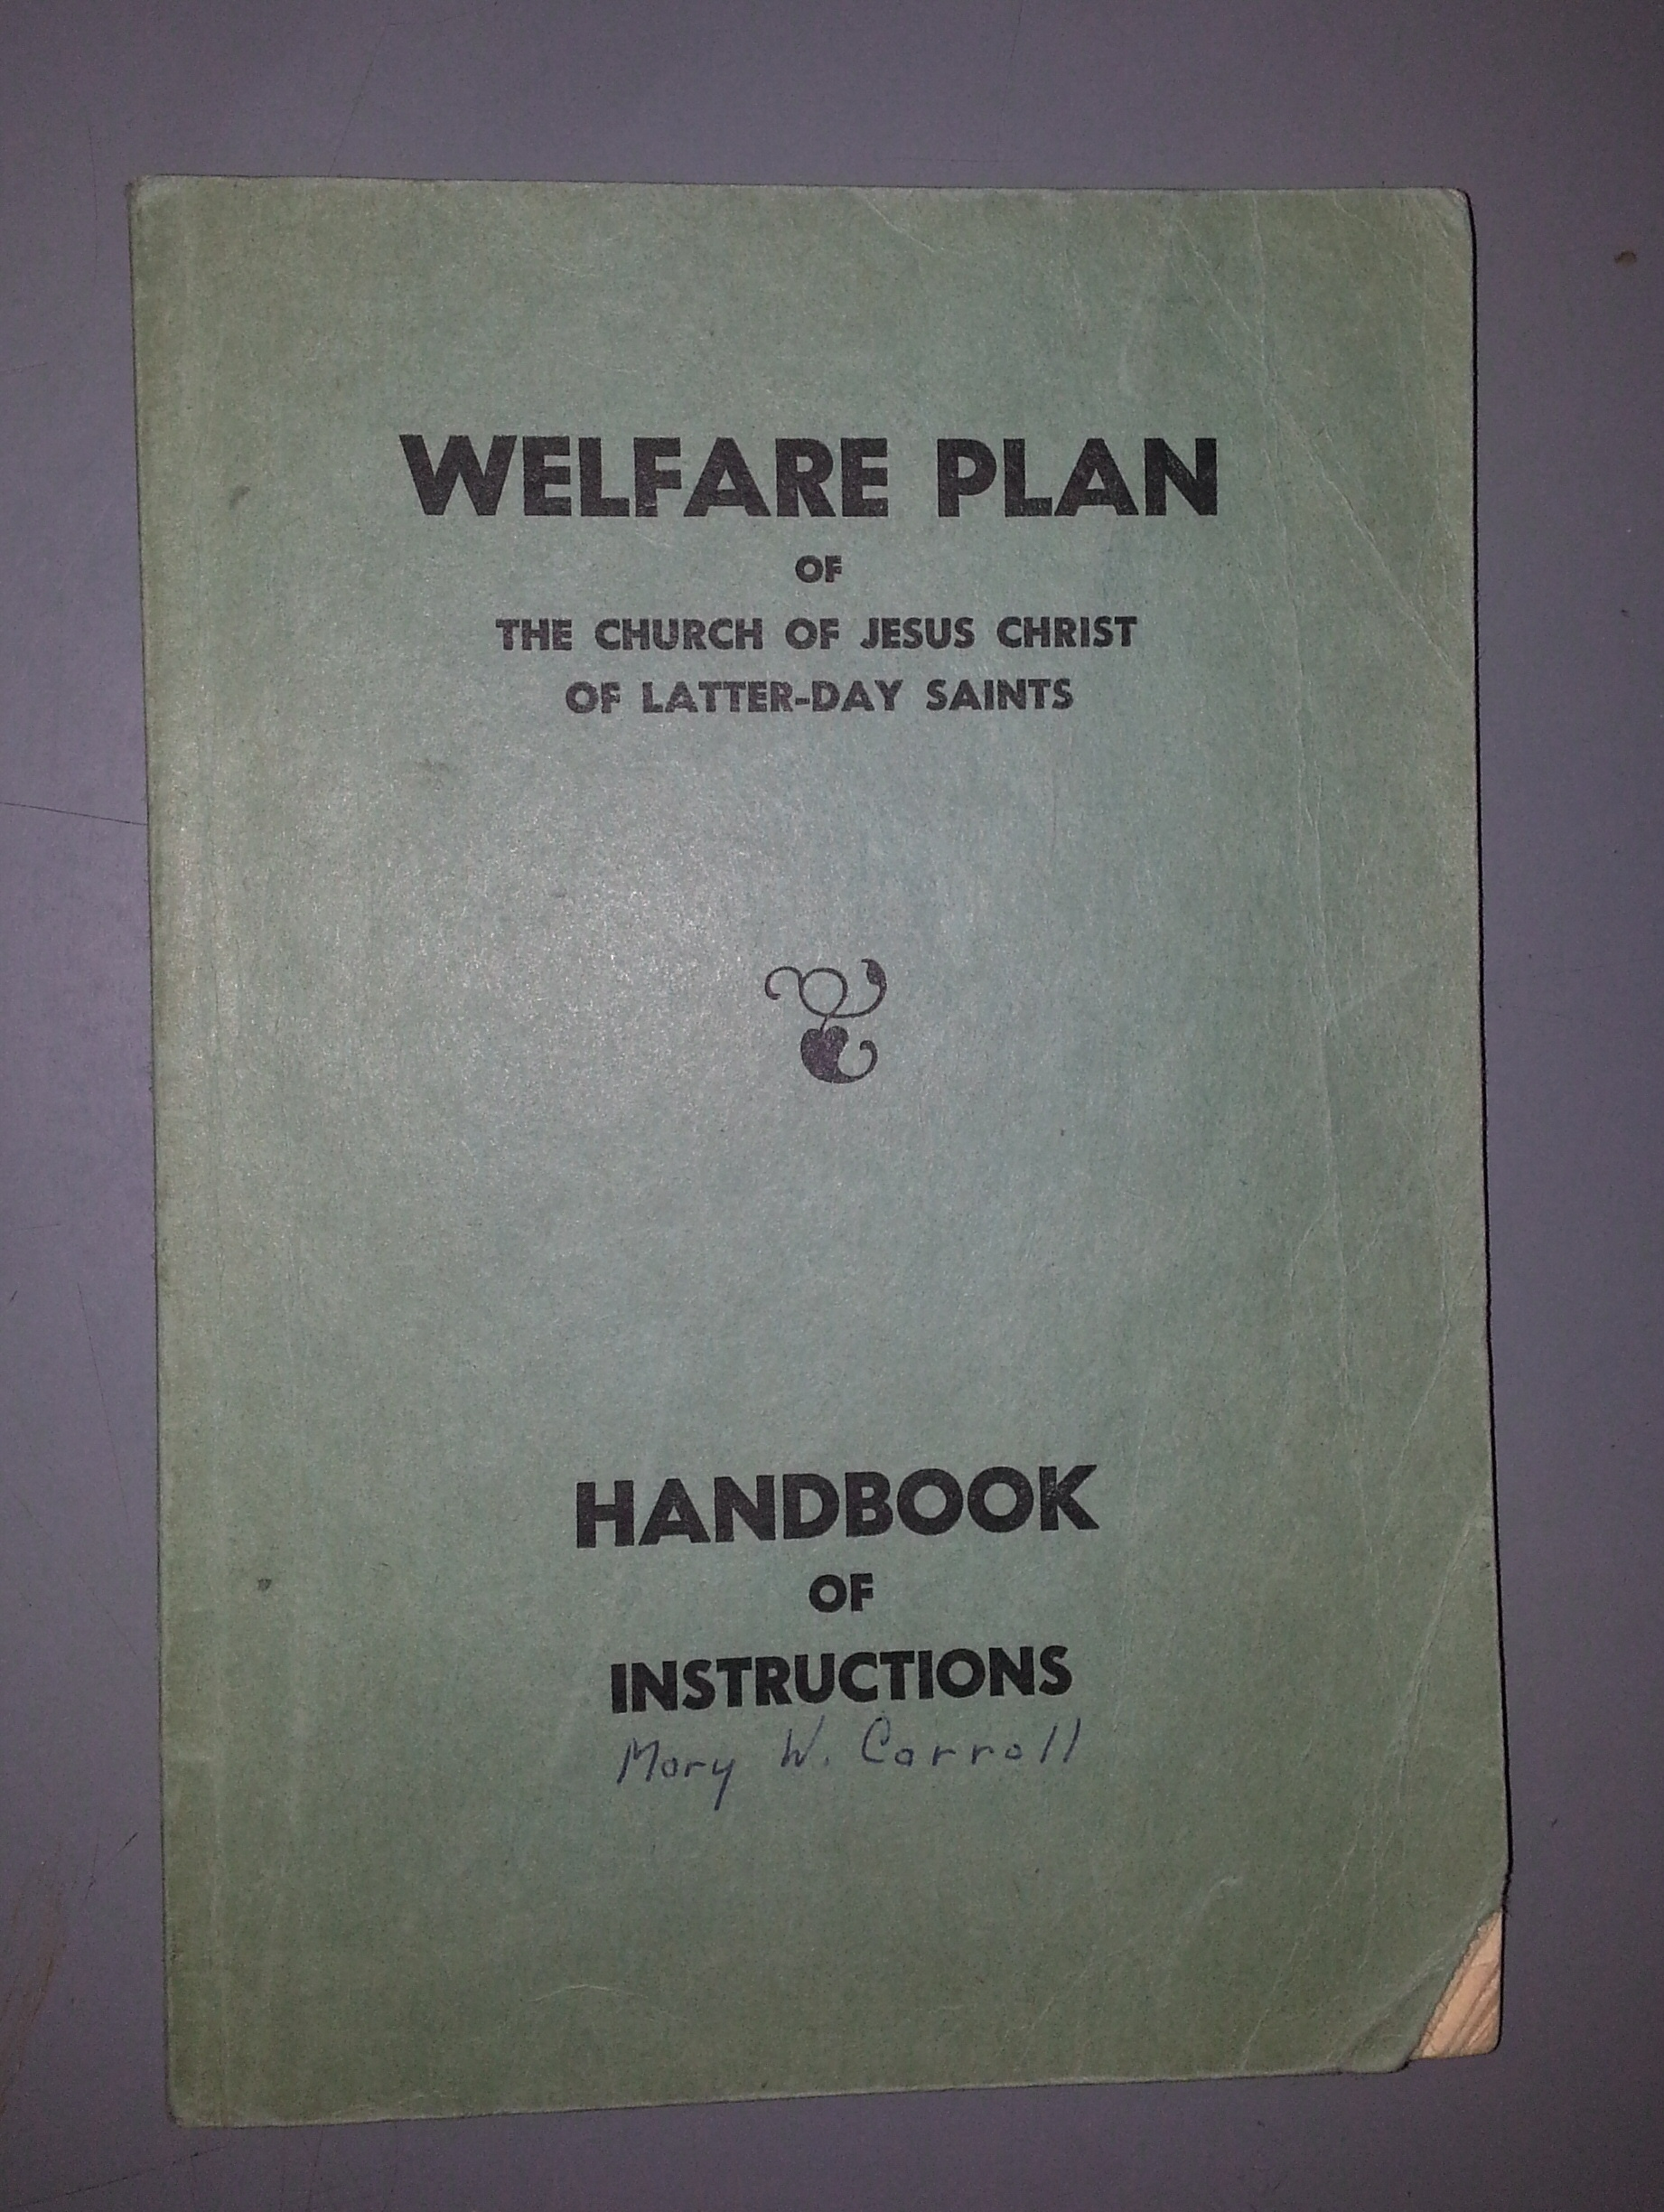 Welfare Plan of the Church of Jesus Christ of Latter-Day Saints (Handbook of Instructions)